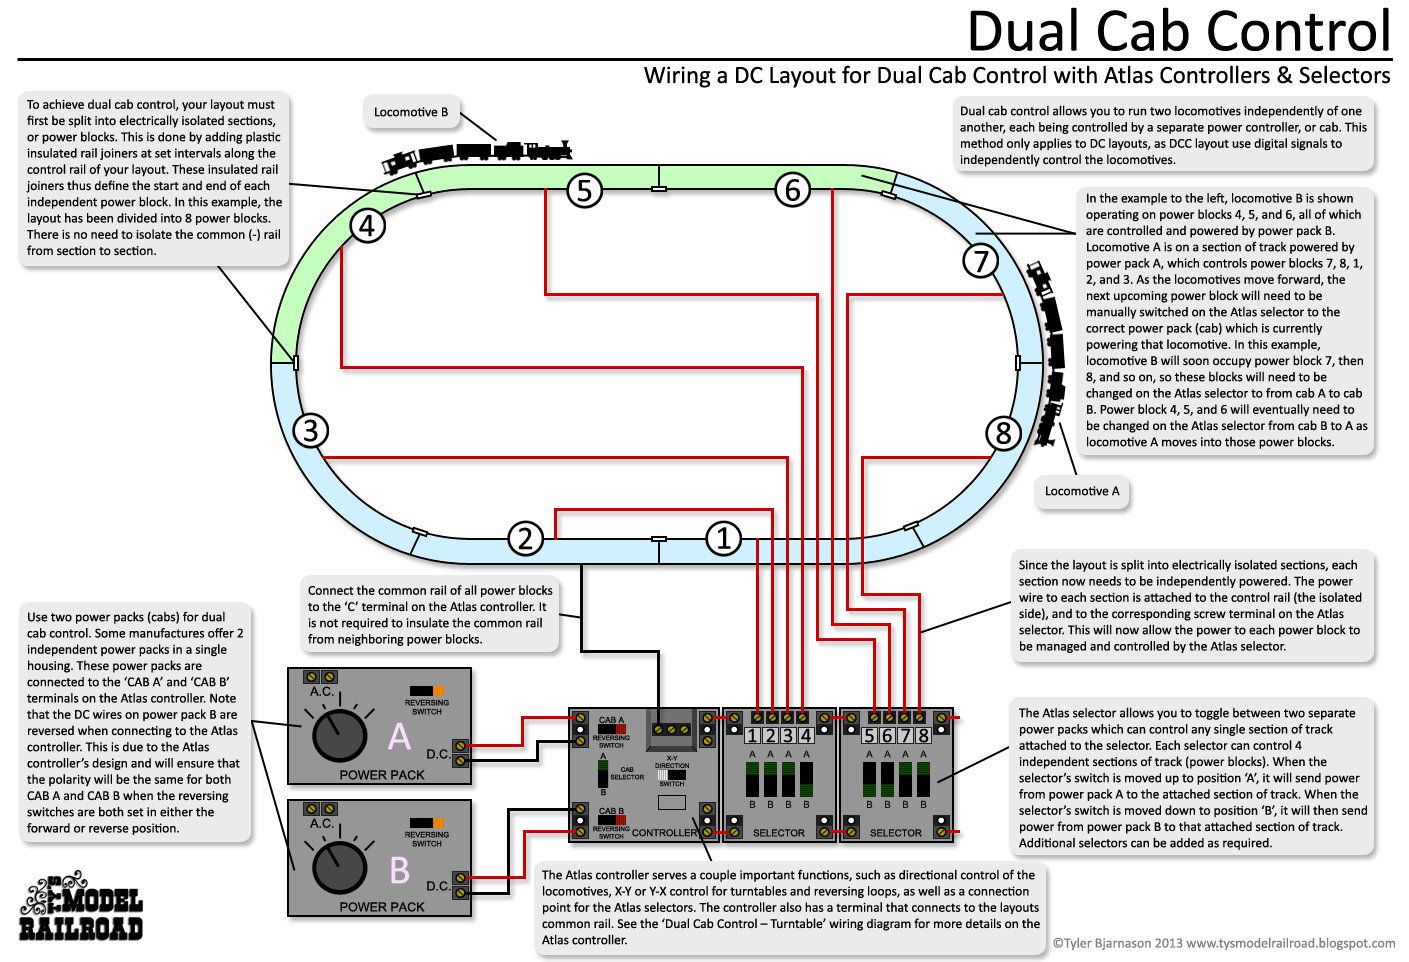 Wondrous Wiring Ho Track Of Common Rail Wiring Diagram G9 Wiring 101 Mecadwellnesstrialsorg